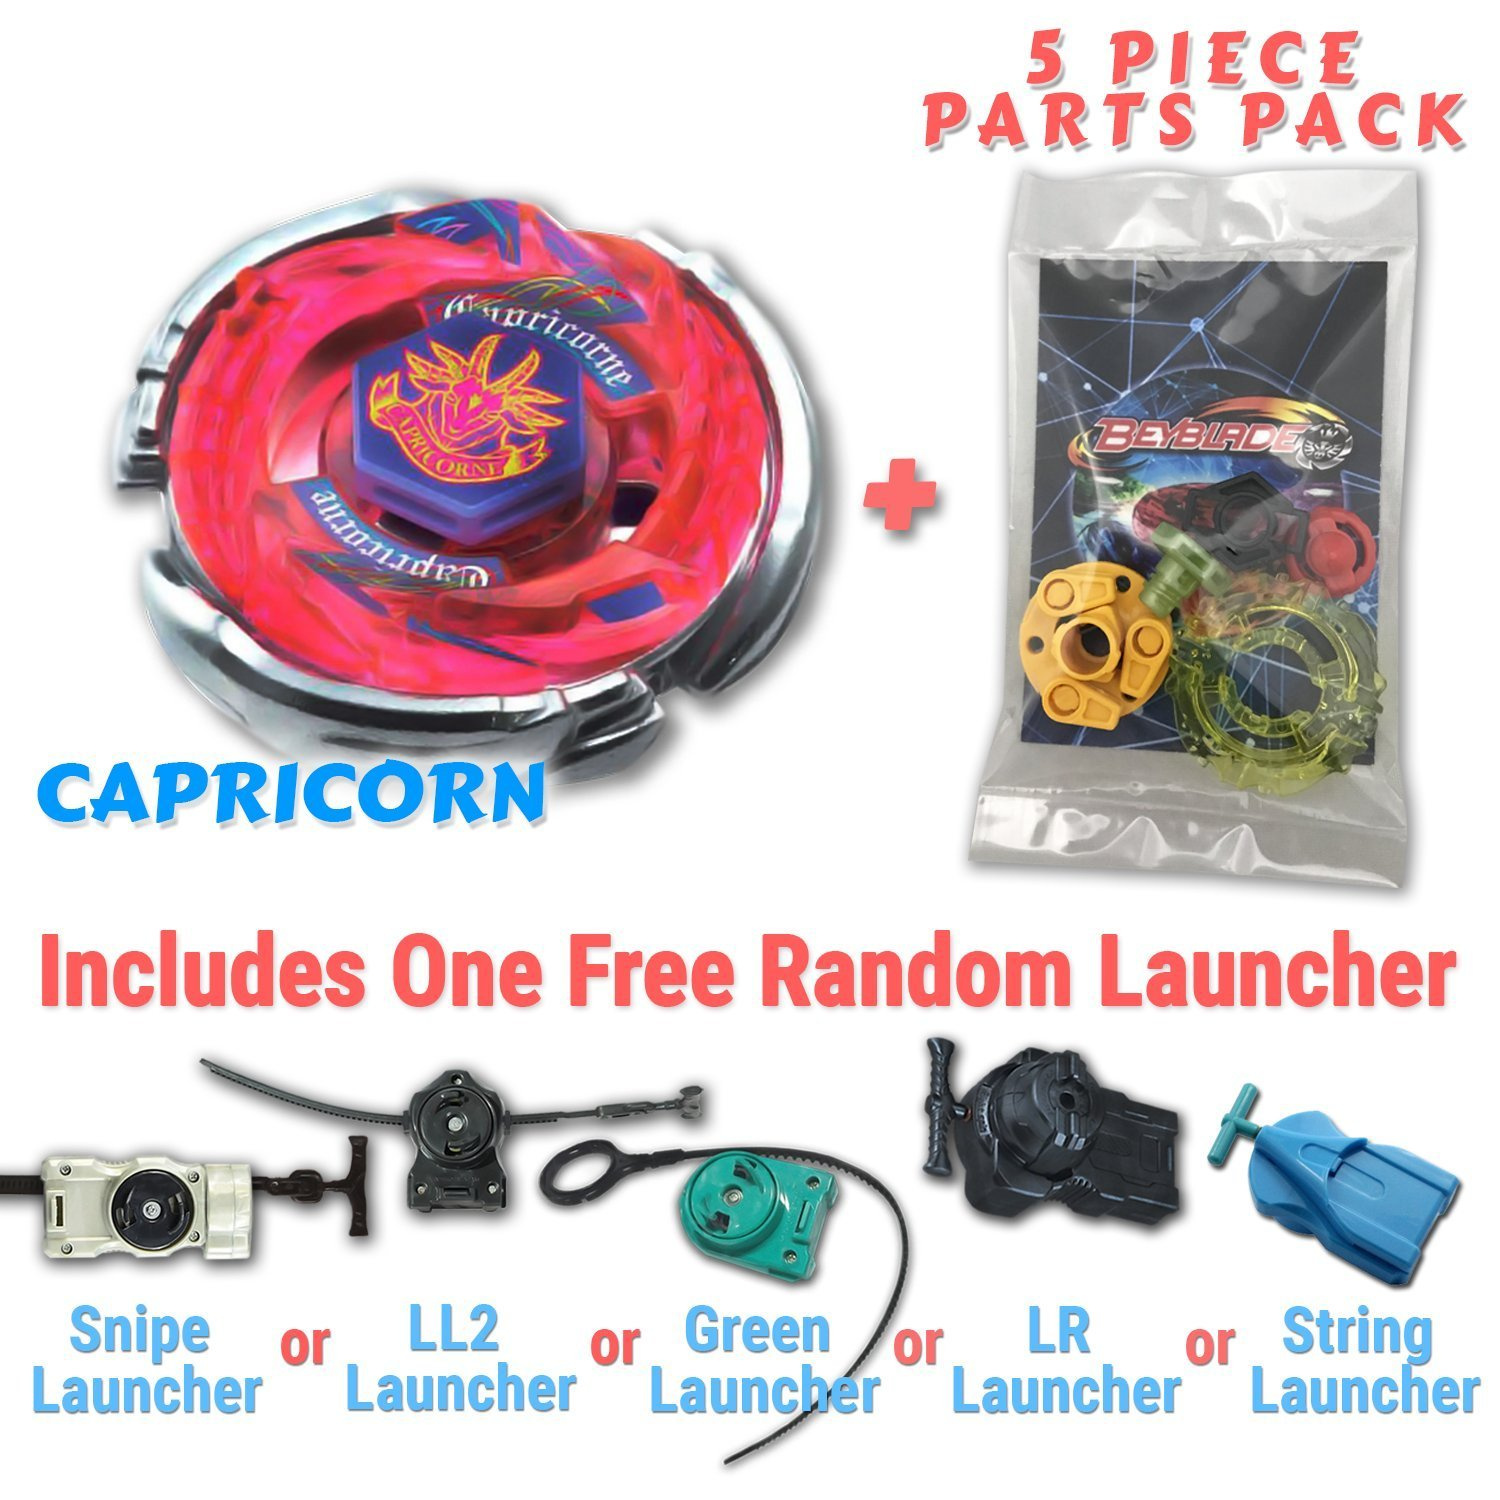 Storm Capricorn BB-50 Beyblade Starter Set Includes Free Gifts - 1  Launcher, 1 Random Stats Card, & 5 Piece Beyblade Parts Pack - All from  Metal